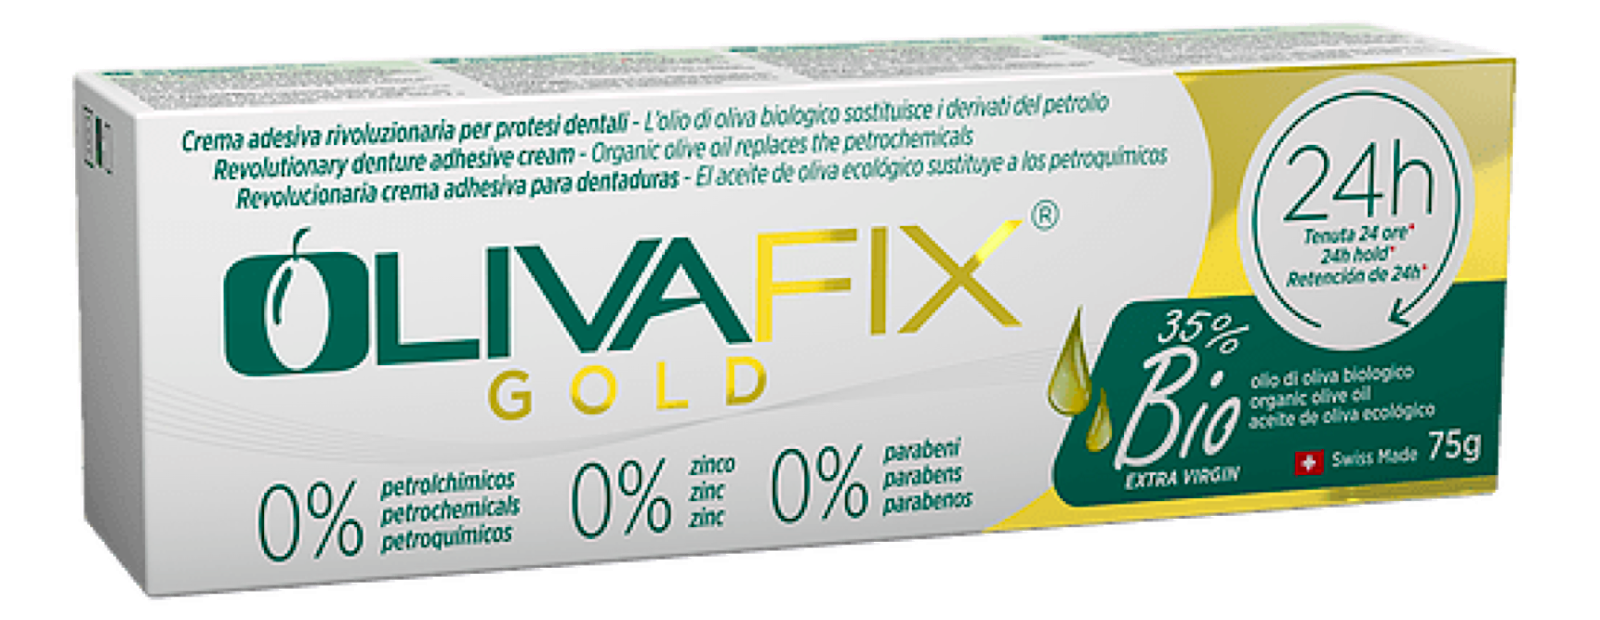 OlivaFix Gold box.  White box with green and gold coloring.